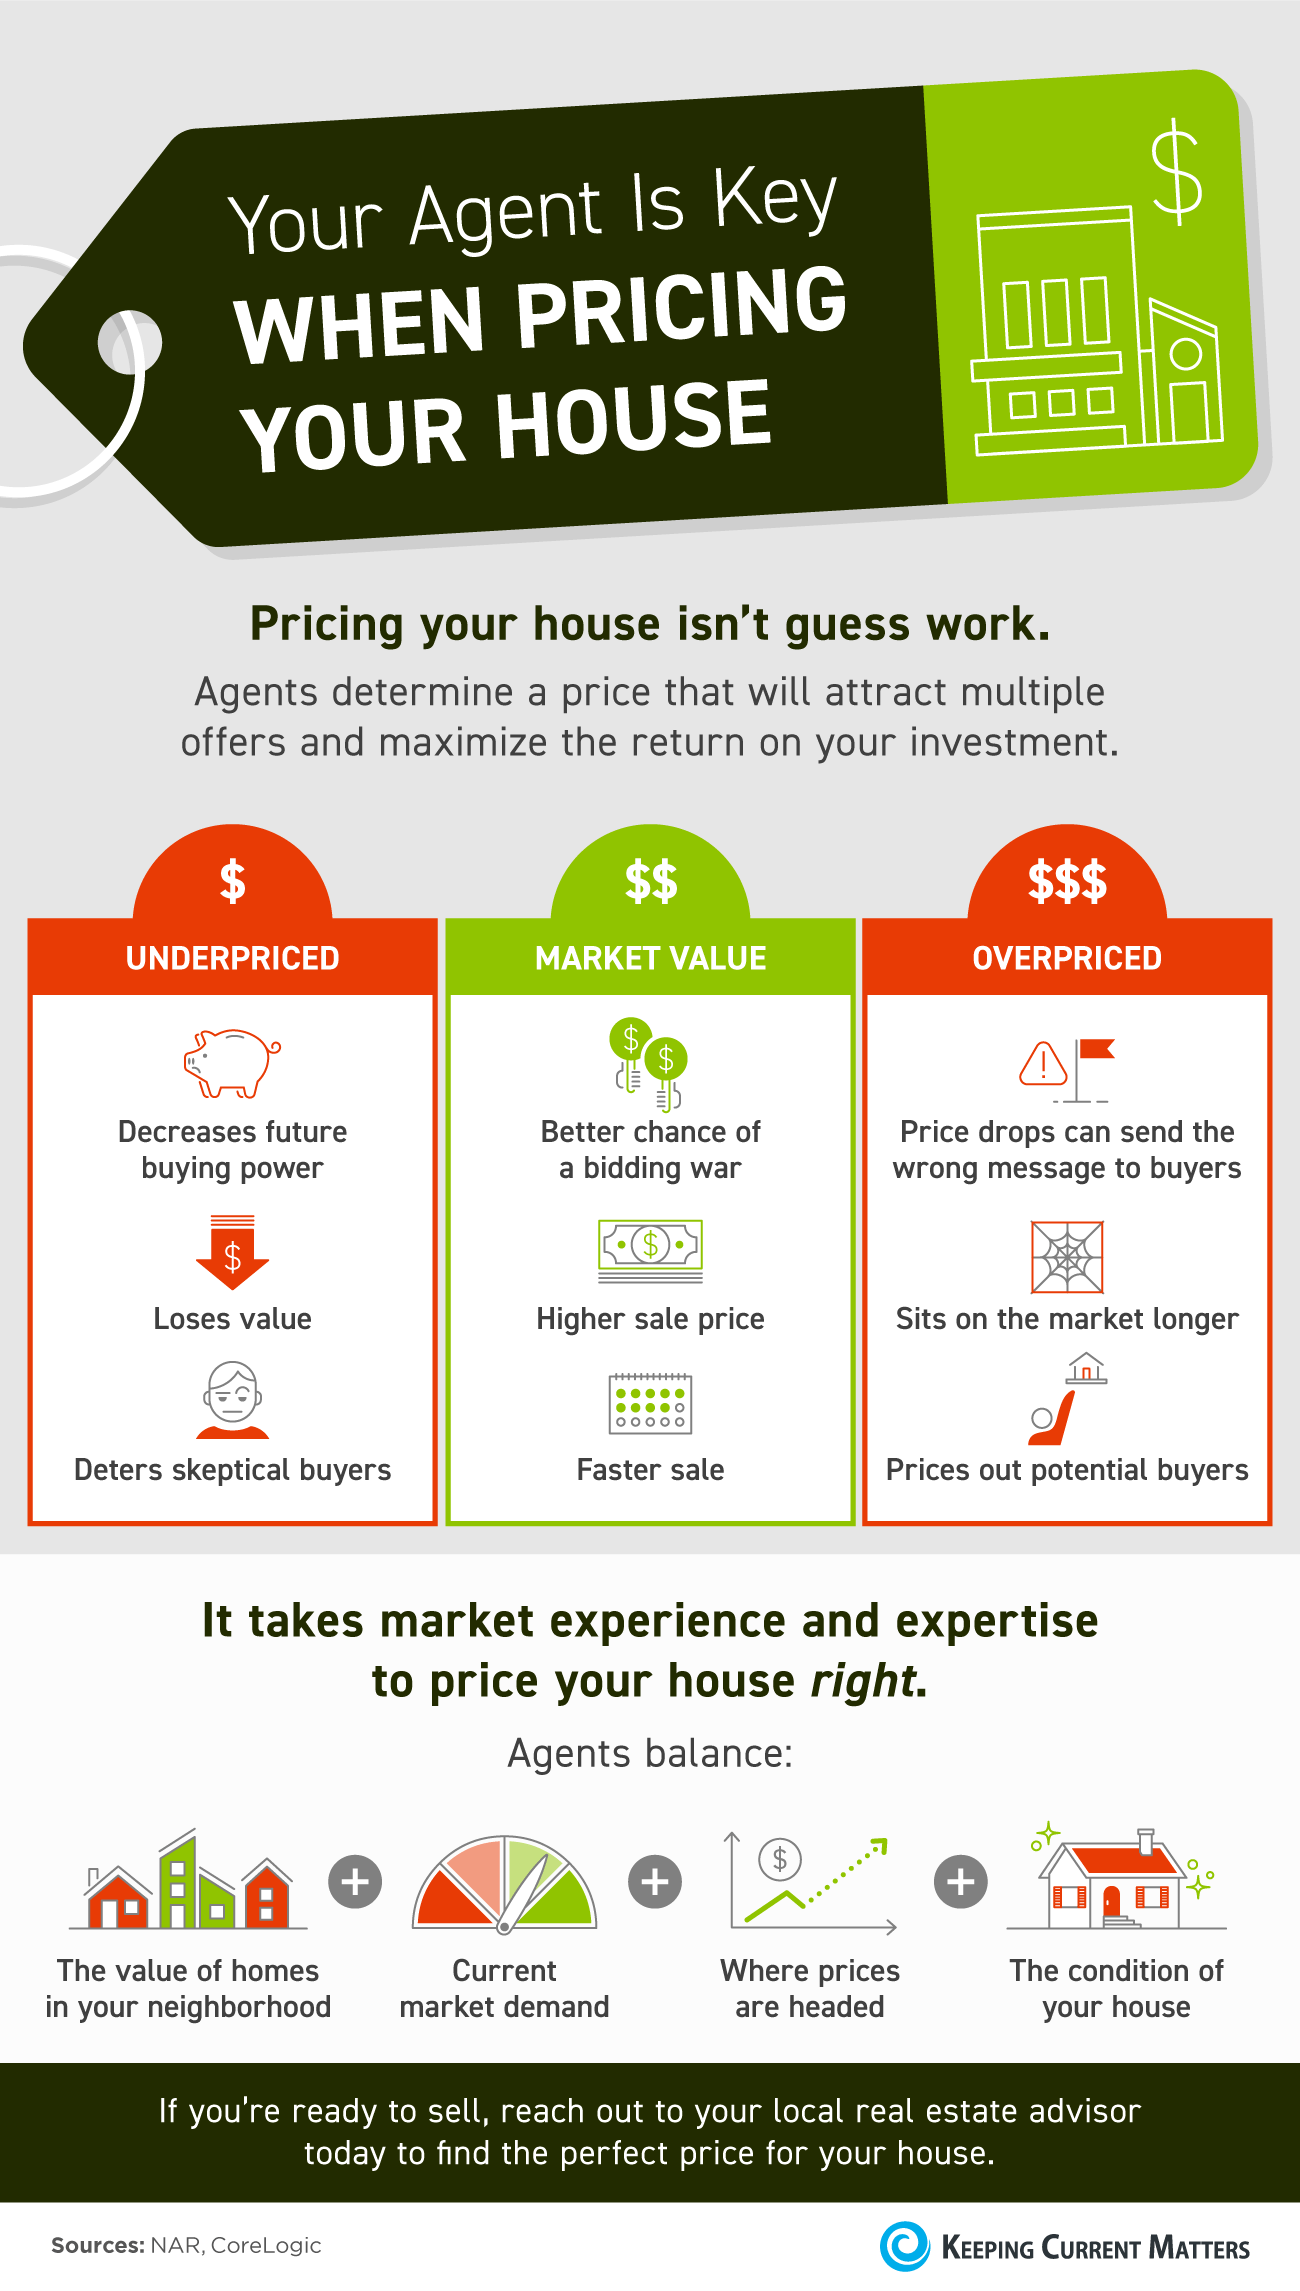 Your Agent Is Key When Pricing Your House [INFOGRAPHIC]   Keeping Current Matters